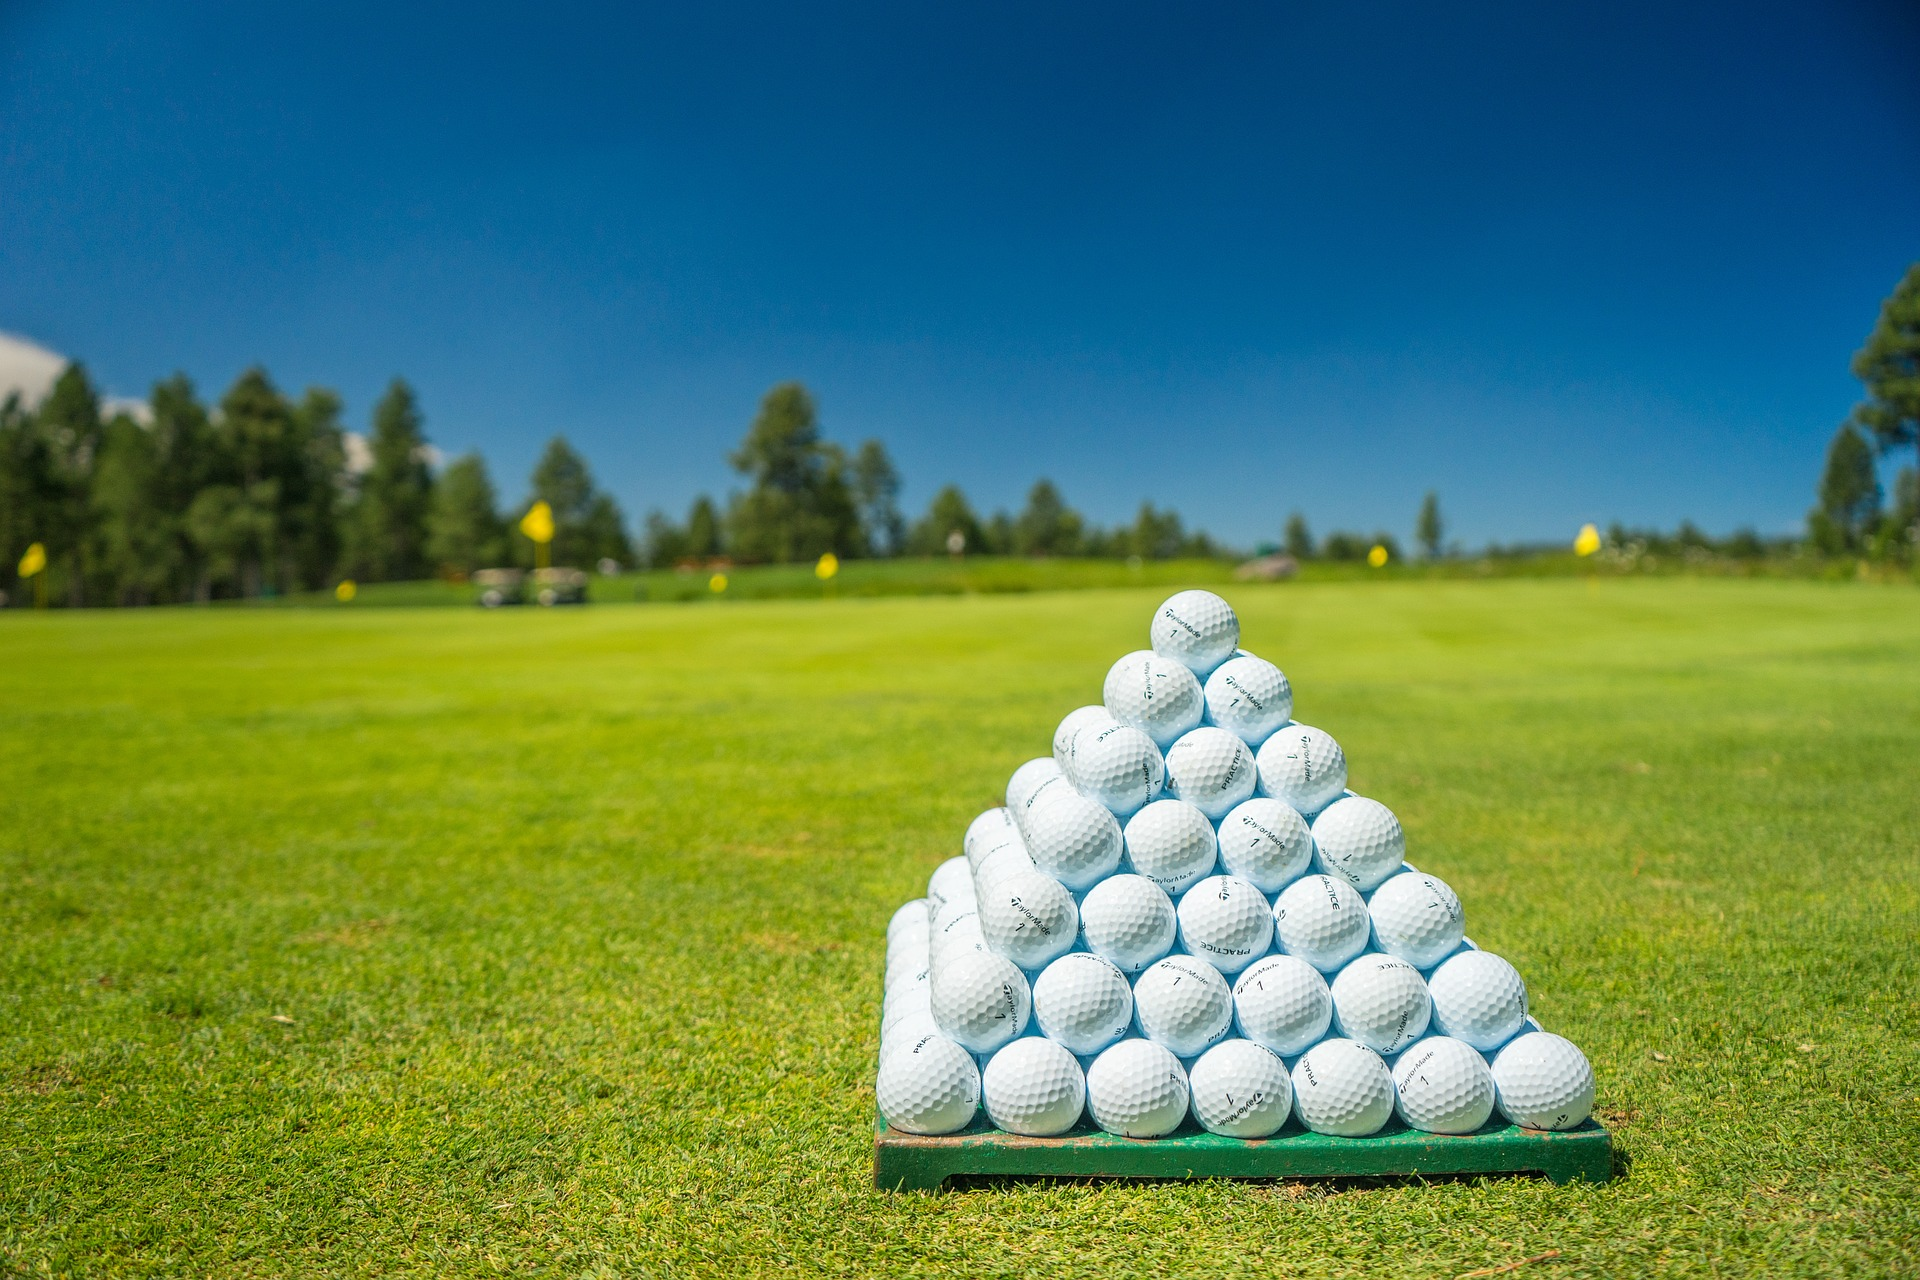 Homeowners near golf courses are earning big hosting pro golfers. Here's how...